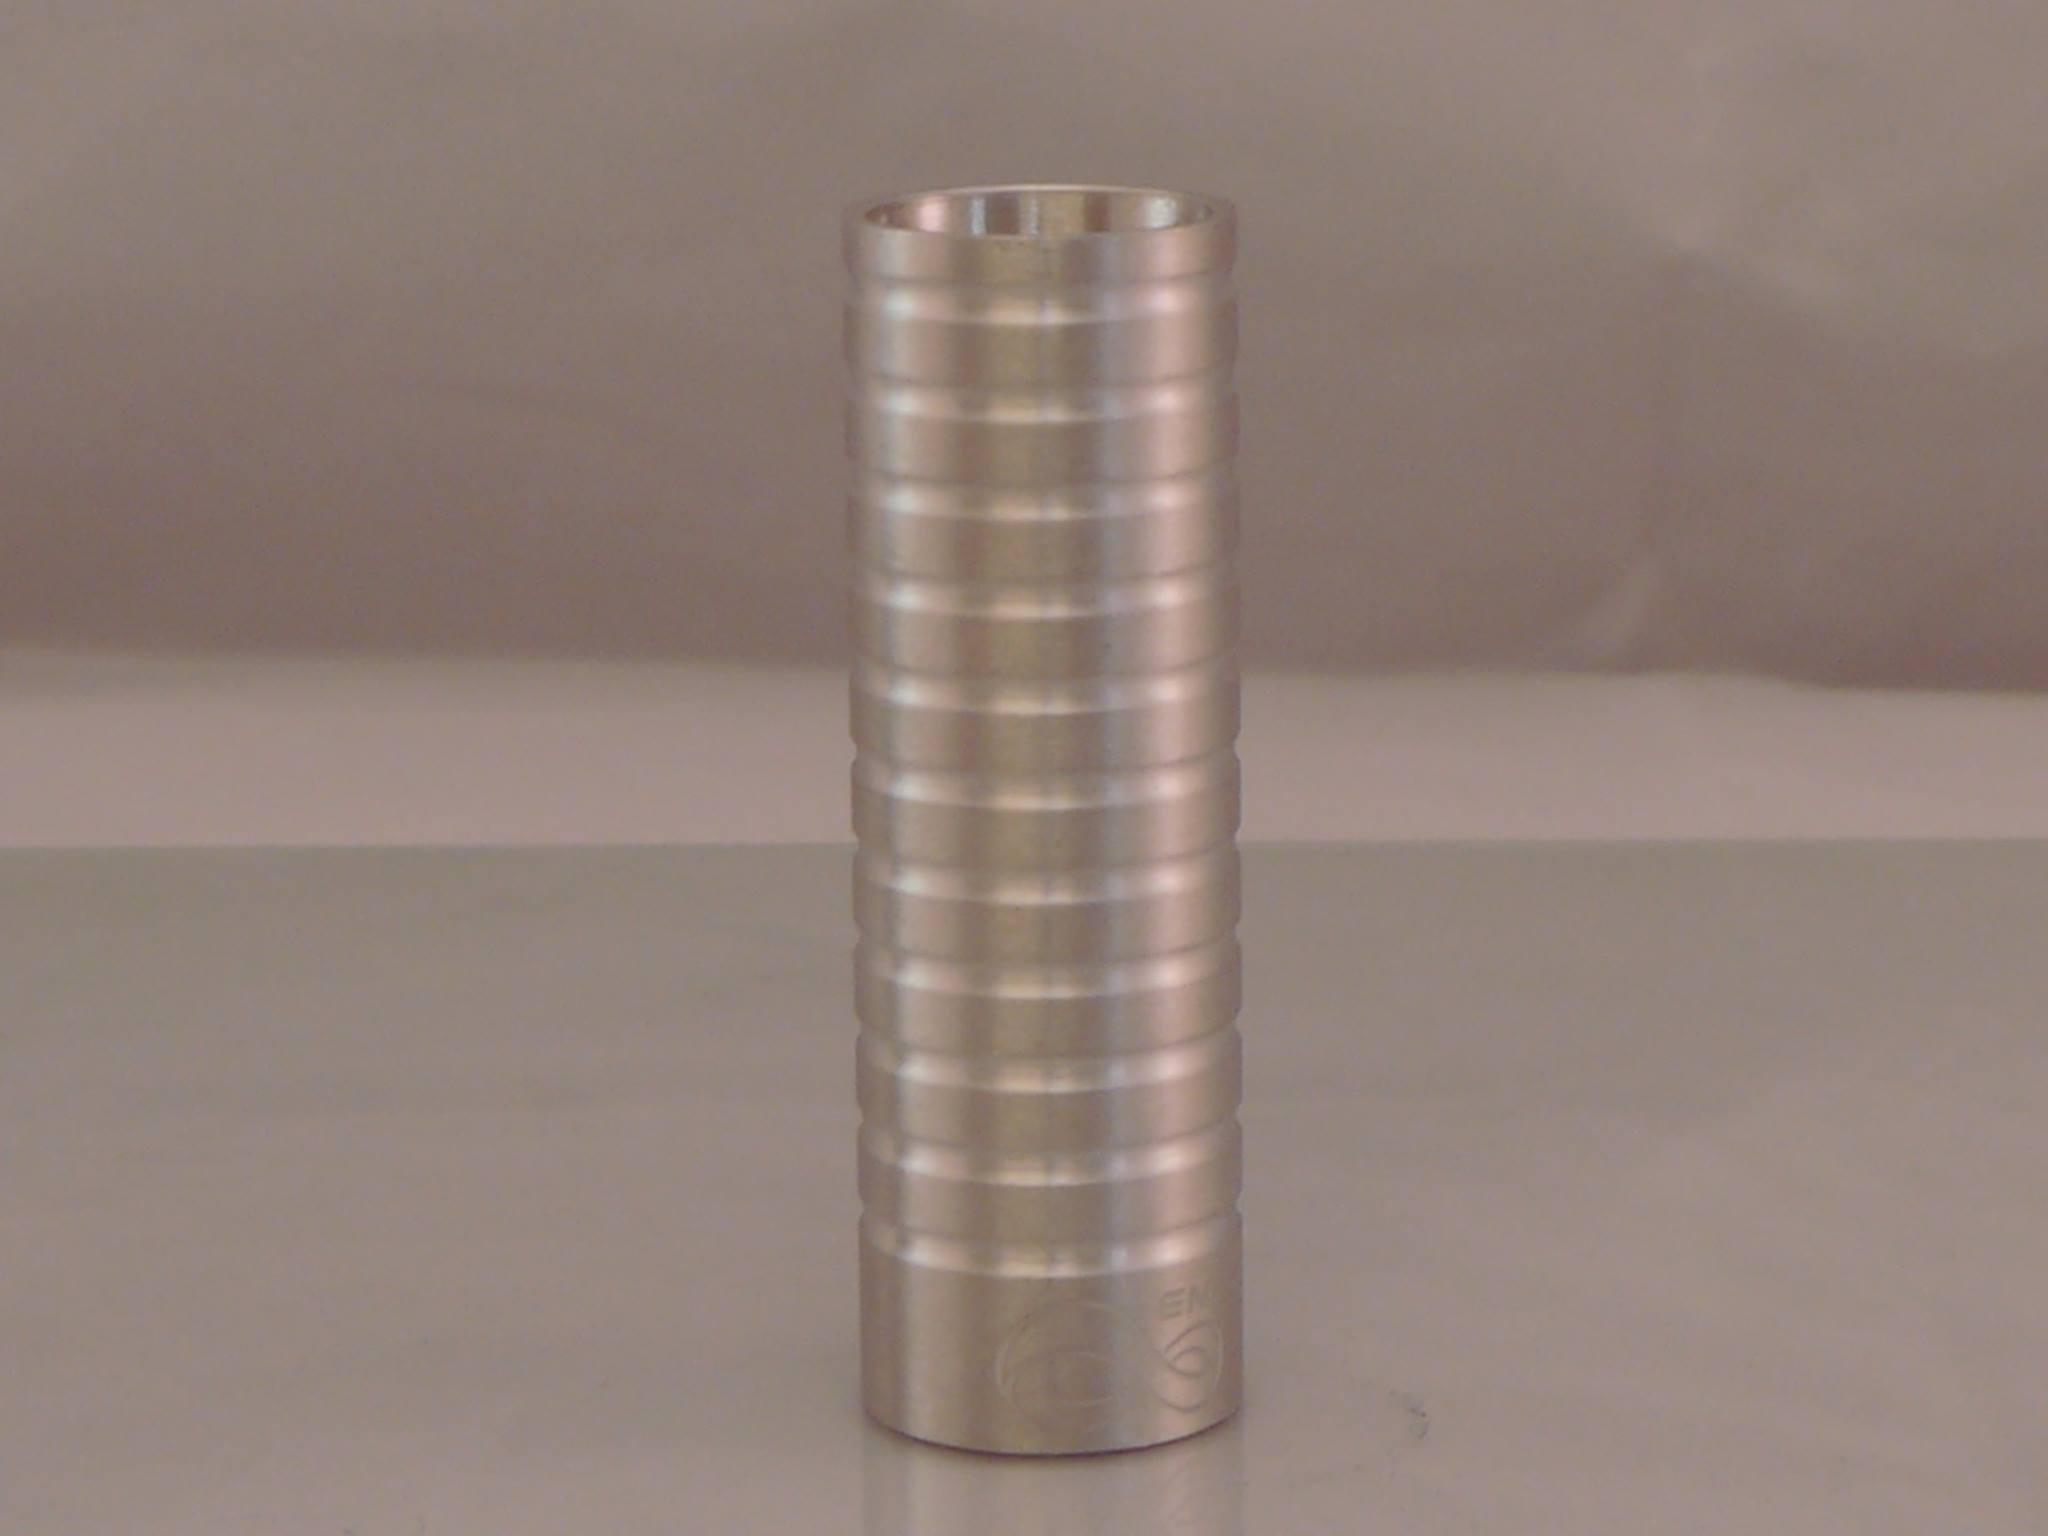 EM Ribbed Sleeves for the Endless Sleeve Mod